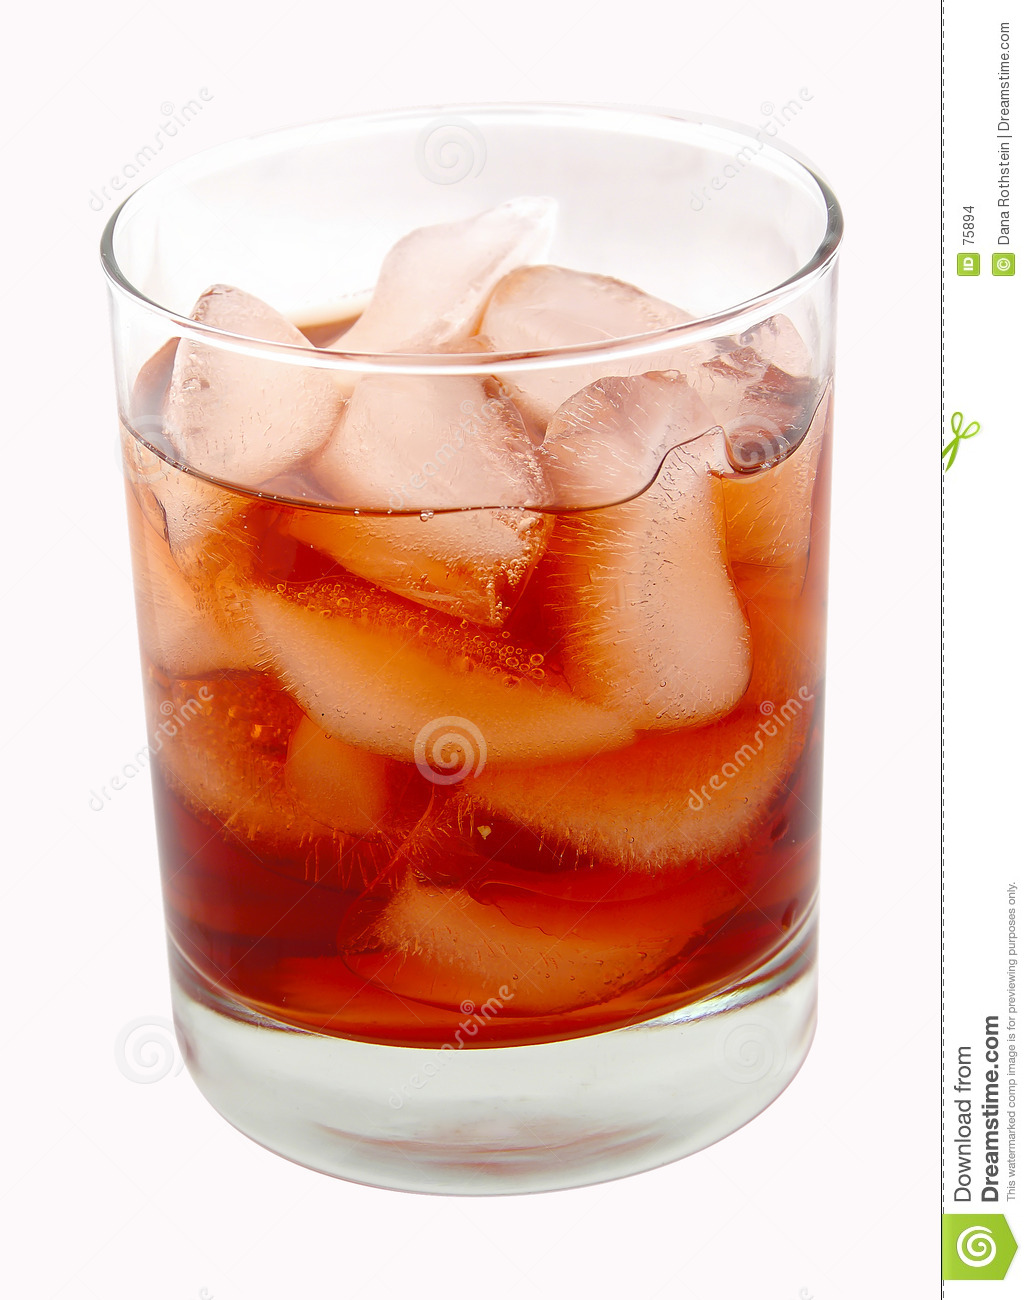 Drink - Clipping Path